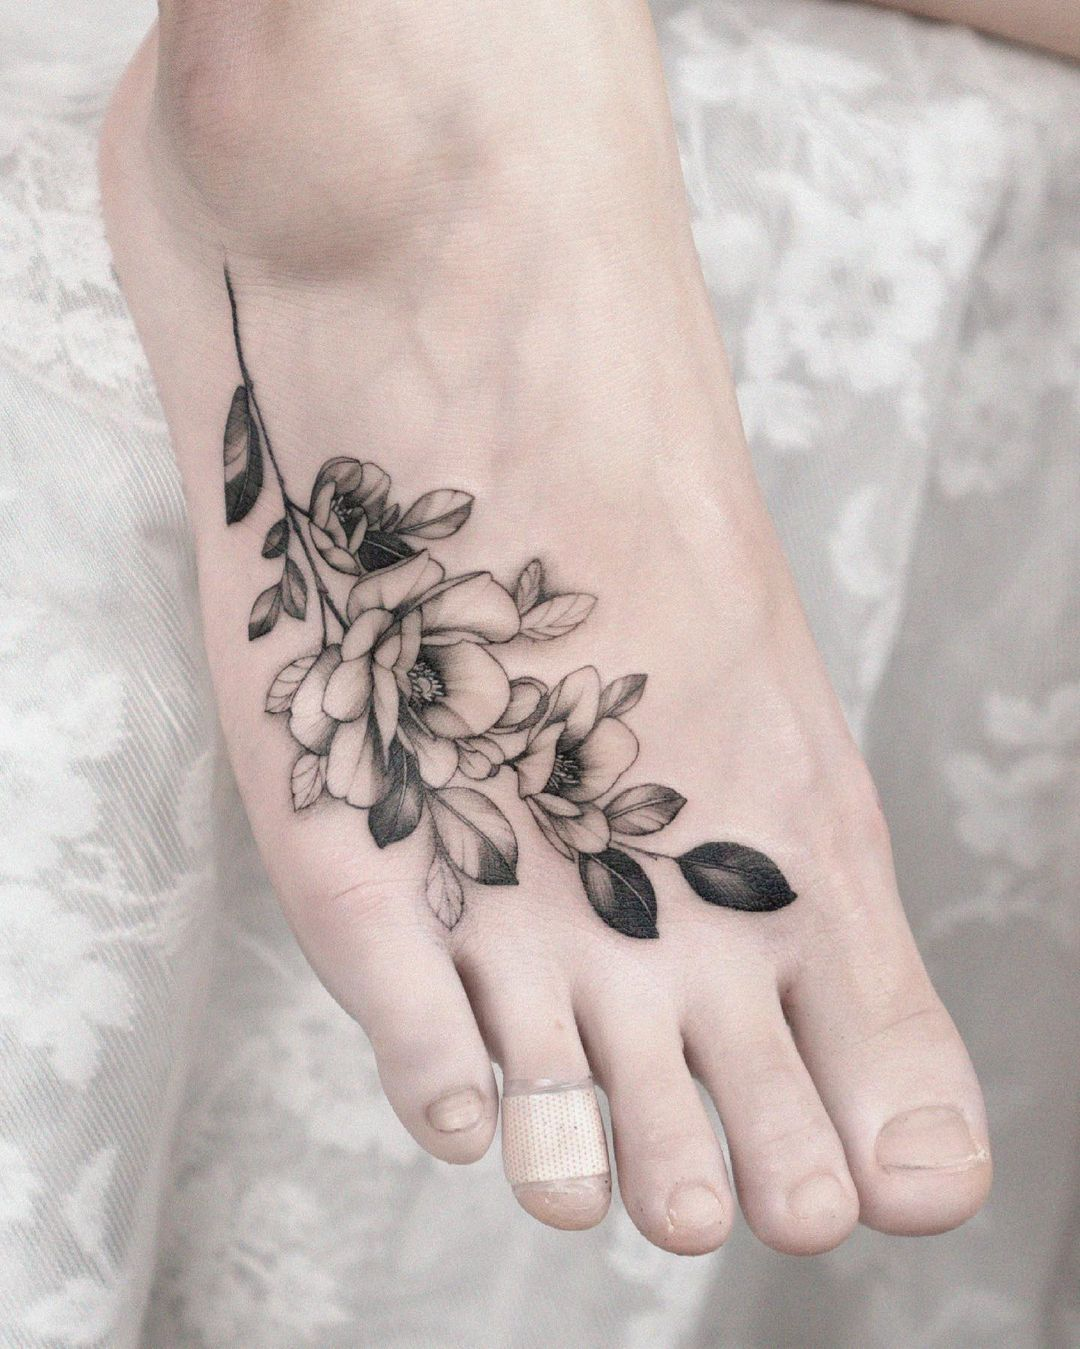 15+ Super Cool Tattoos For Women images 13